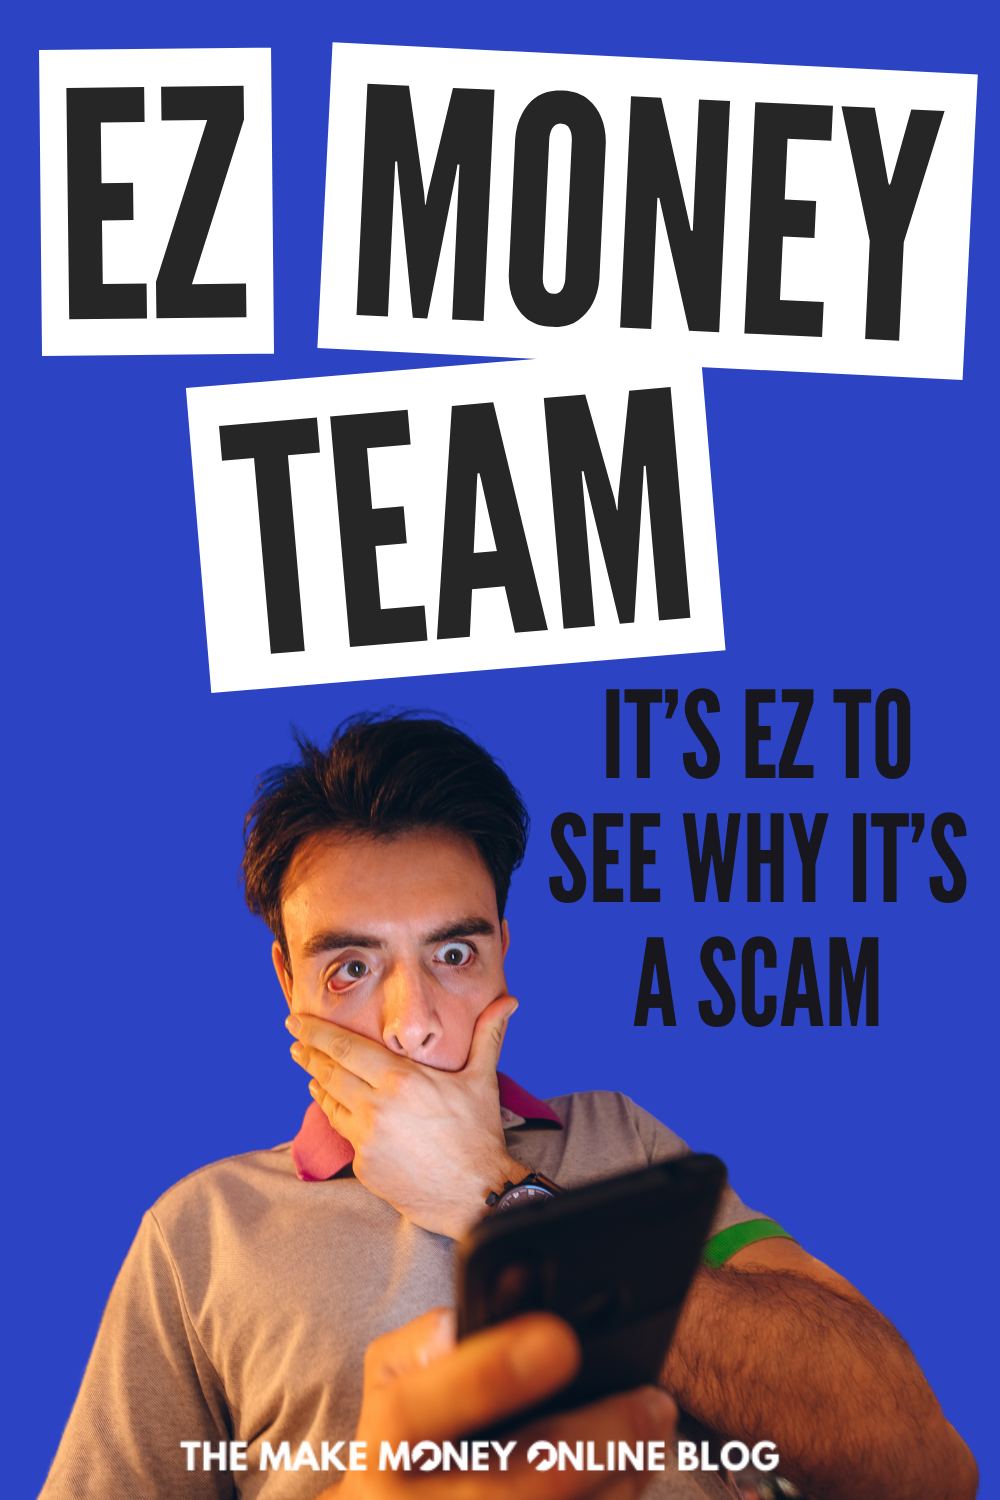 EZ Money Team Scam Review